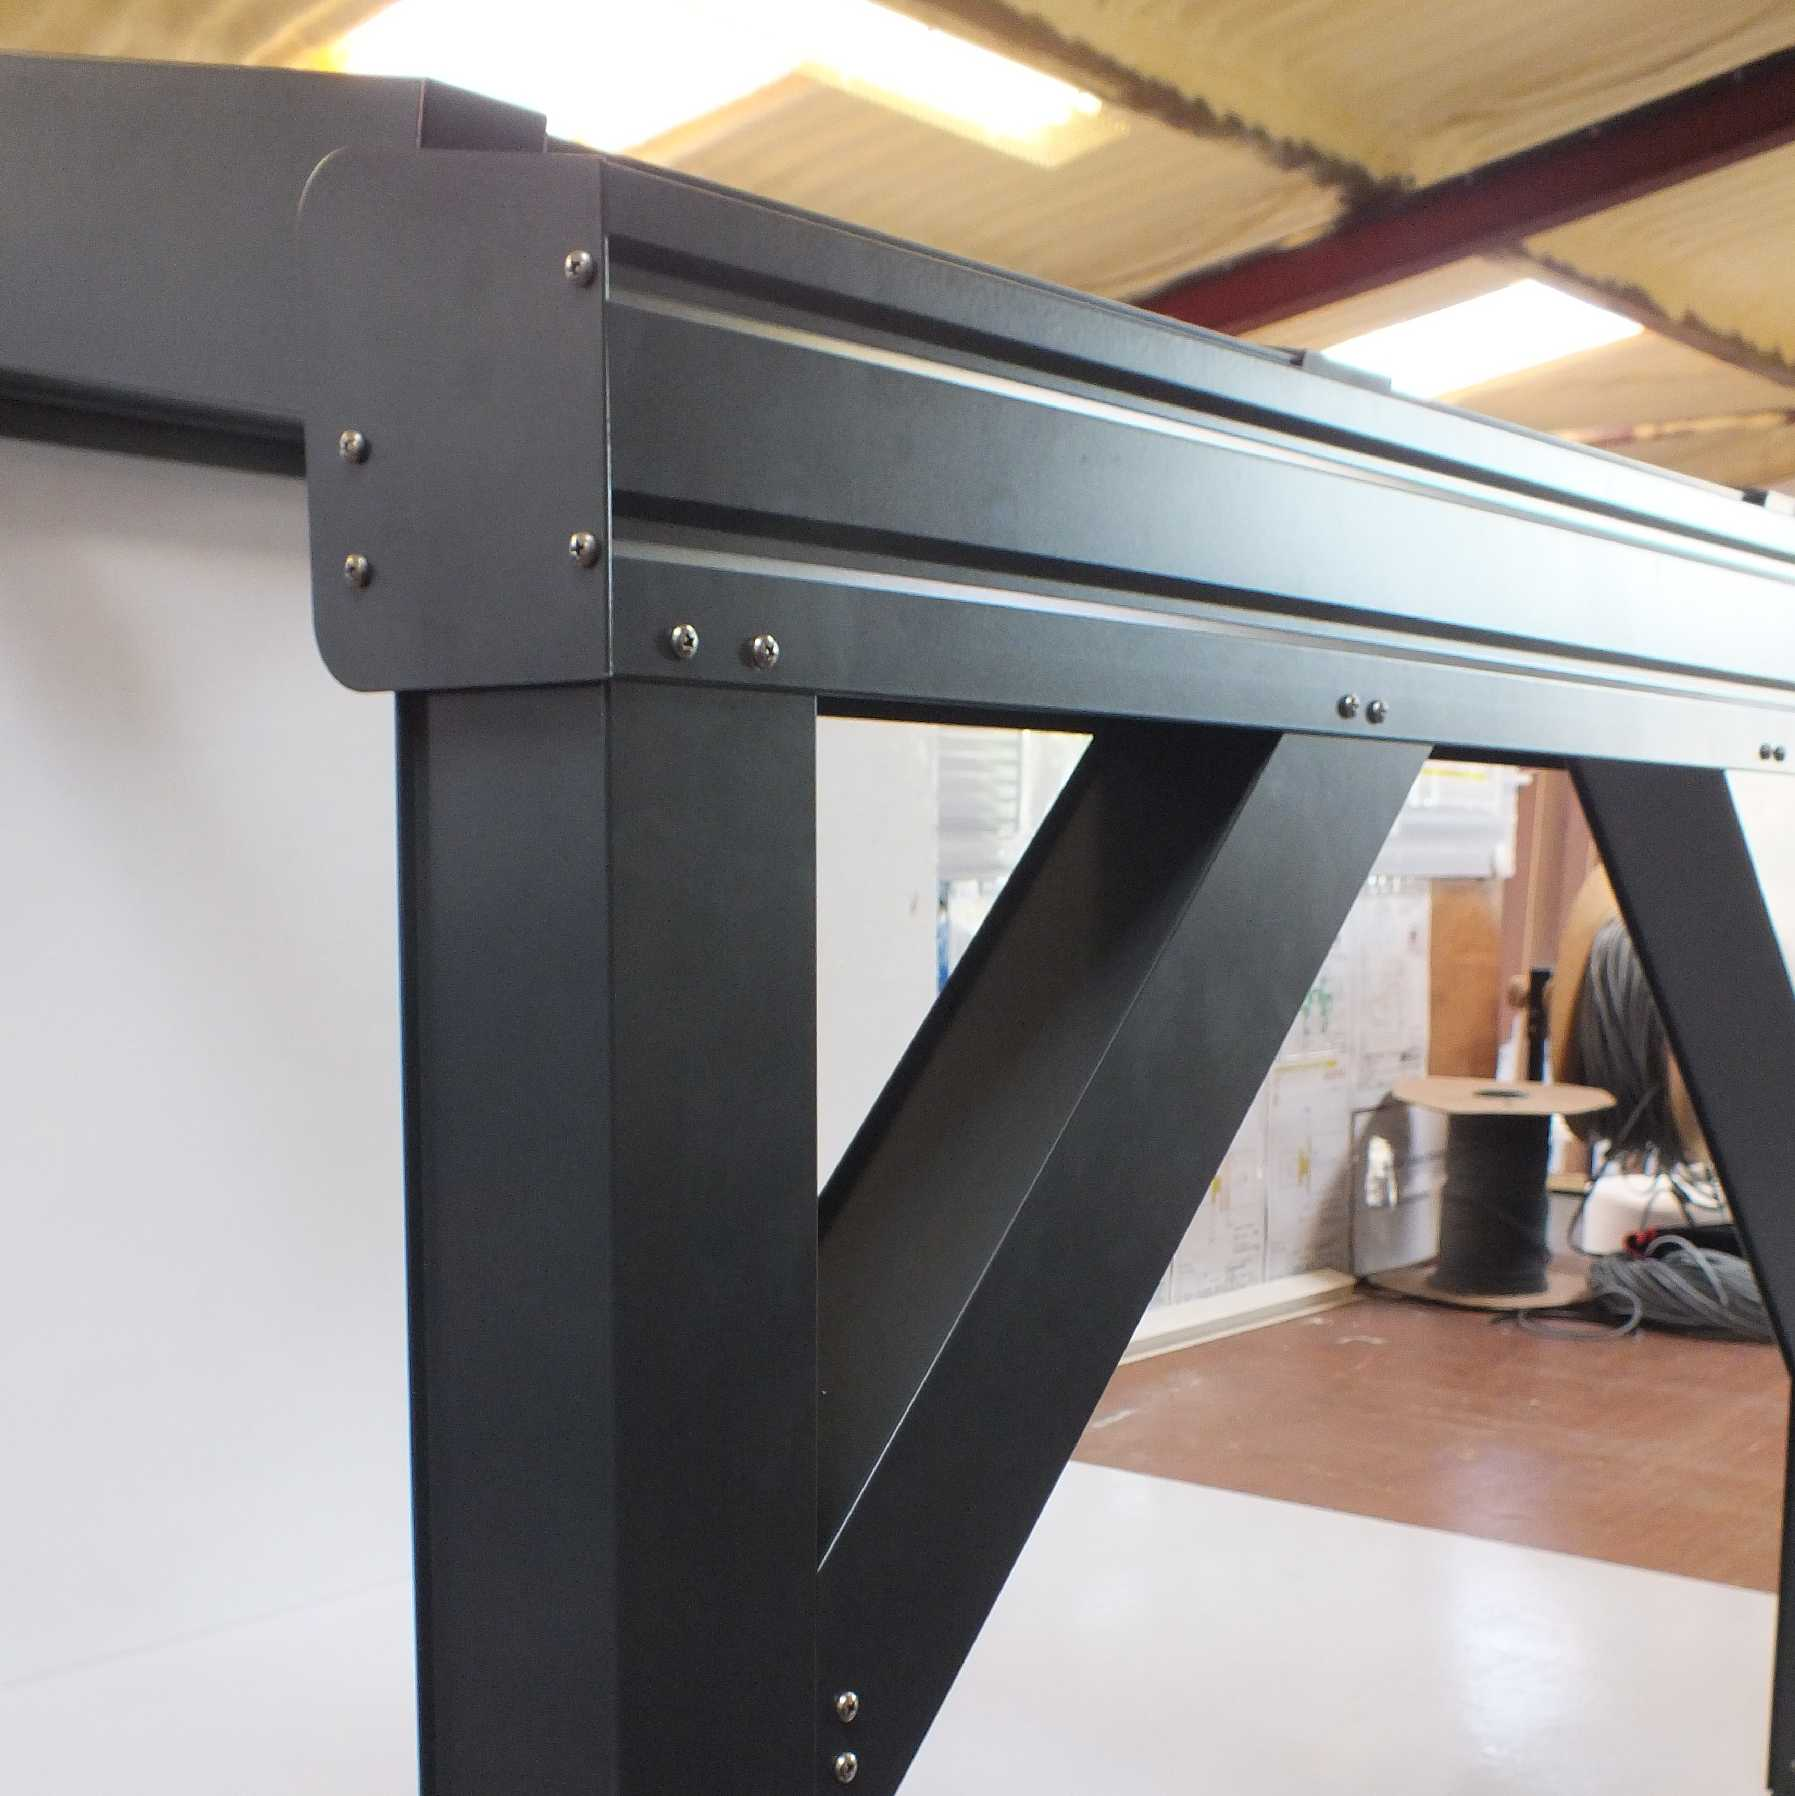 Omega Smart Lean-To Canopy, Anthracite Grey, UNGLAZED for 6mm Glazing - 4.9m (W) x 2.5m (P), (3) Supporting Posts from Omega Build